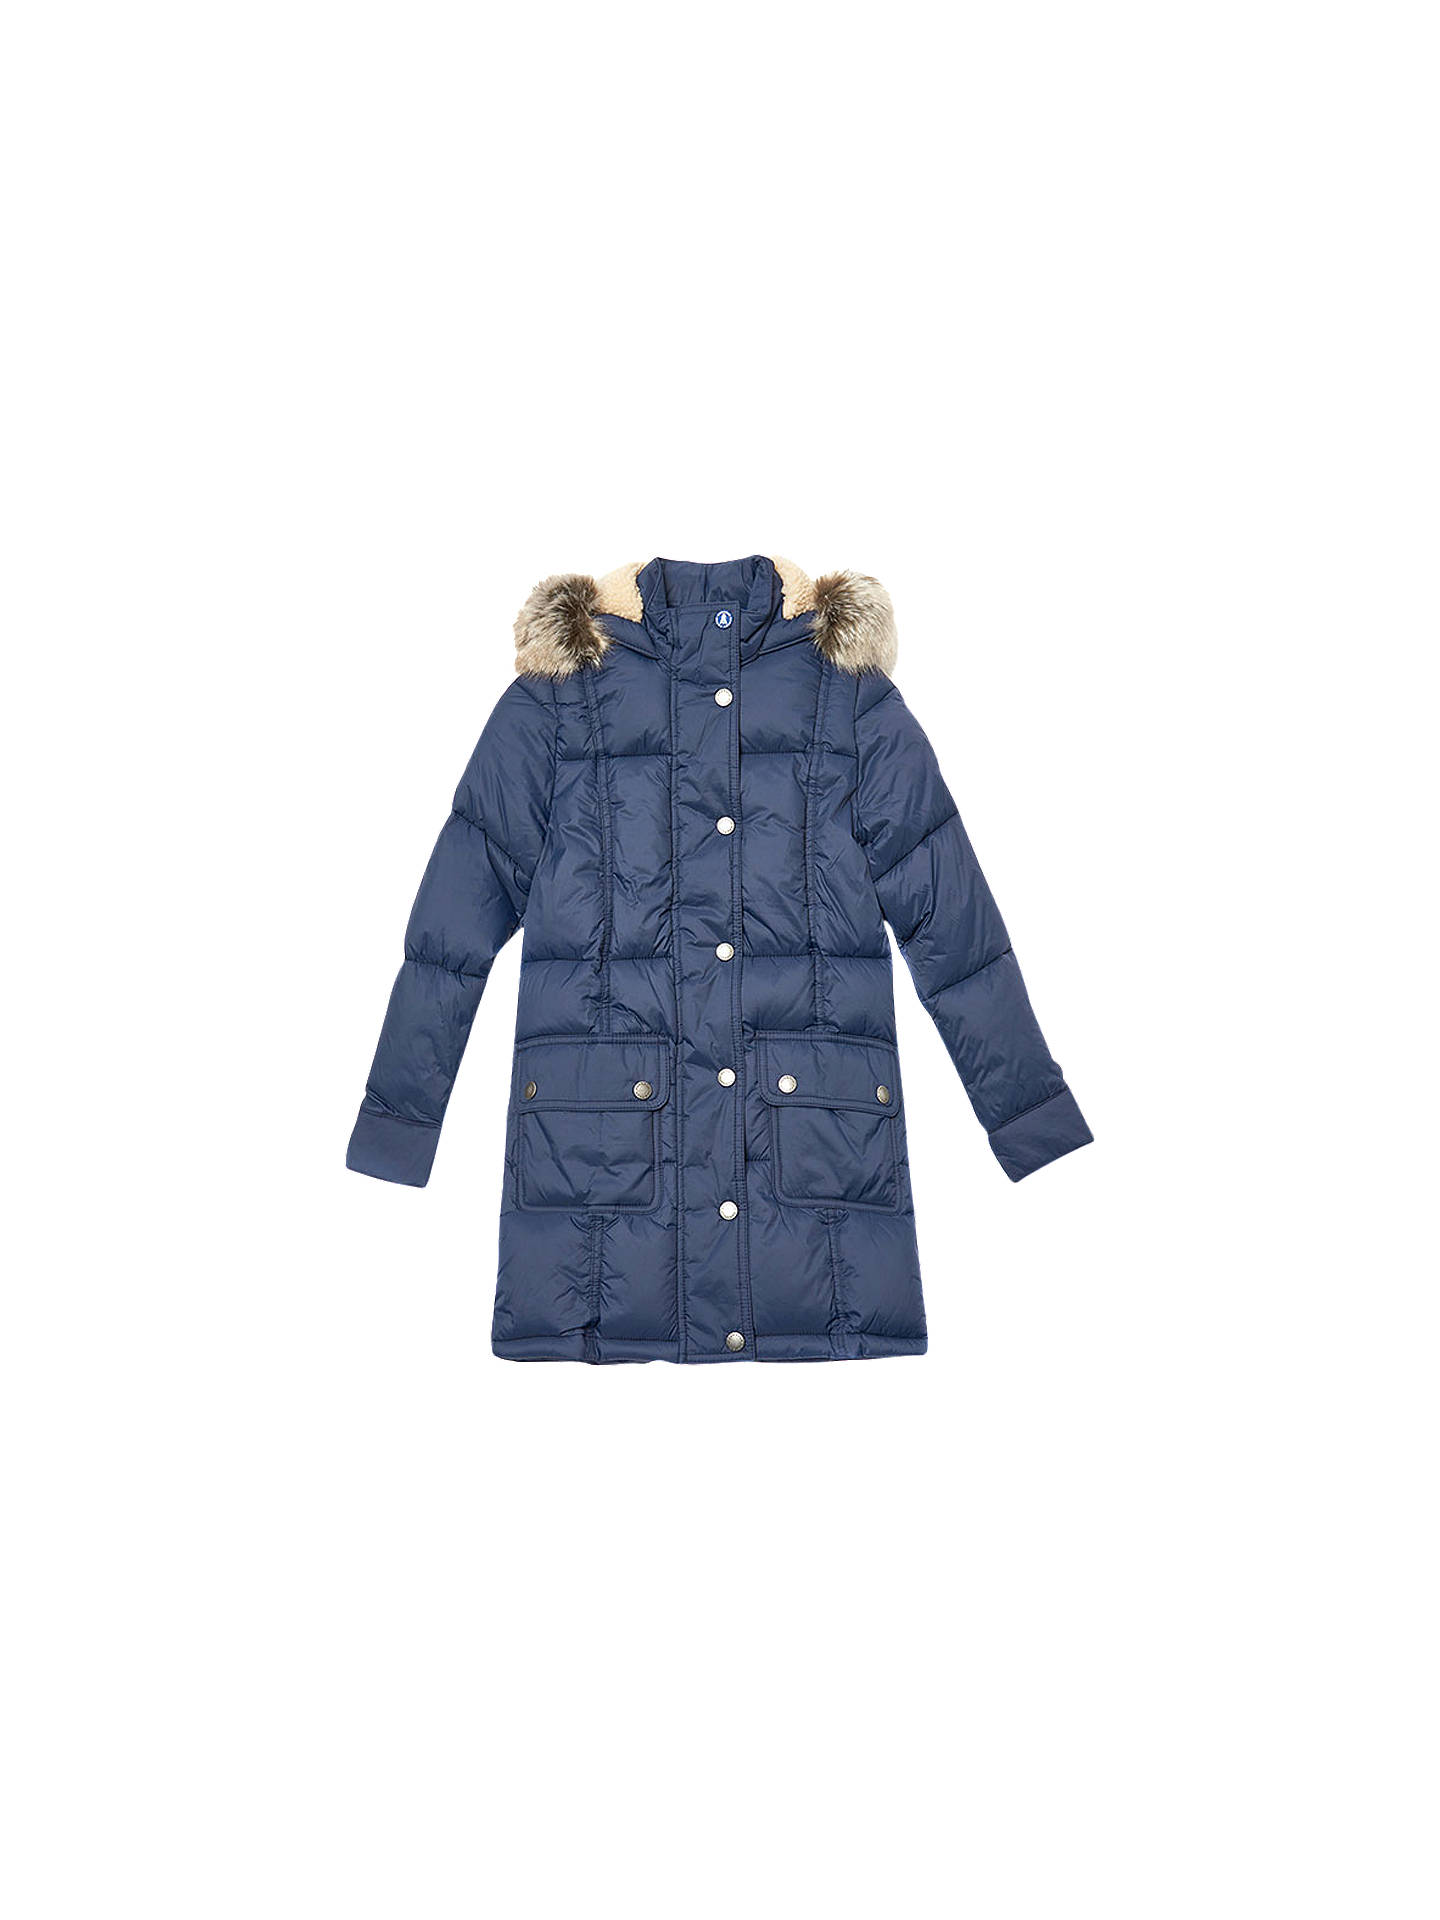 9a57fbb4 Buy Barbour Girls' Icefield Quilted Jacket, Navy, XXS Online at johnlewis.  ...